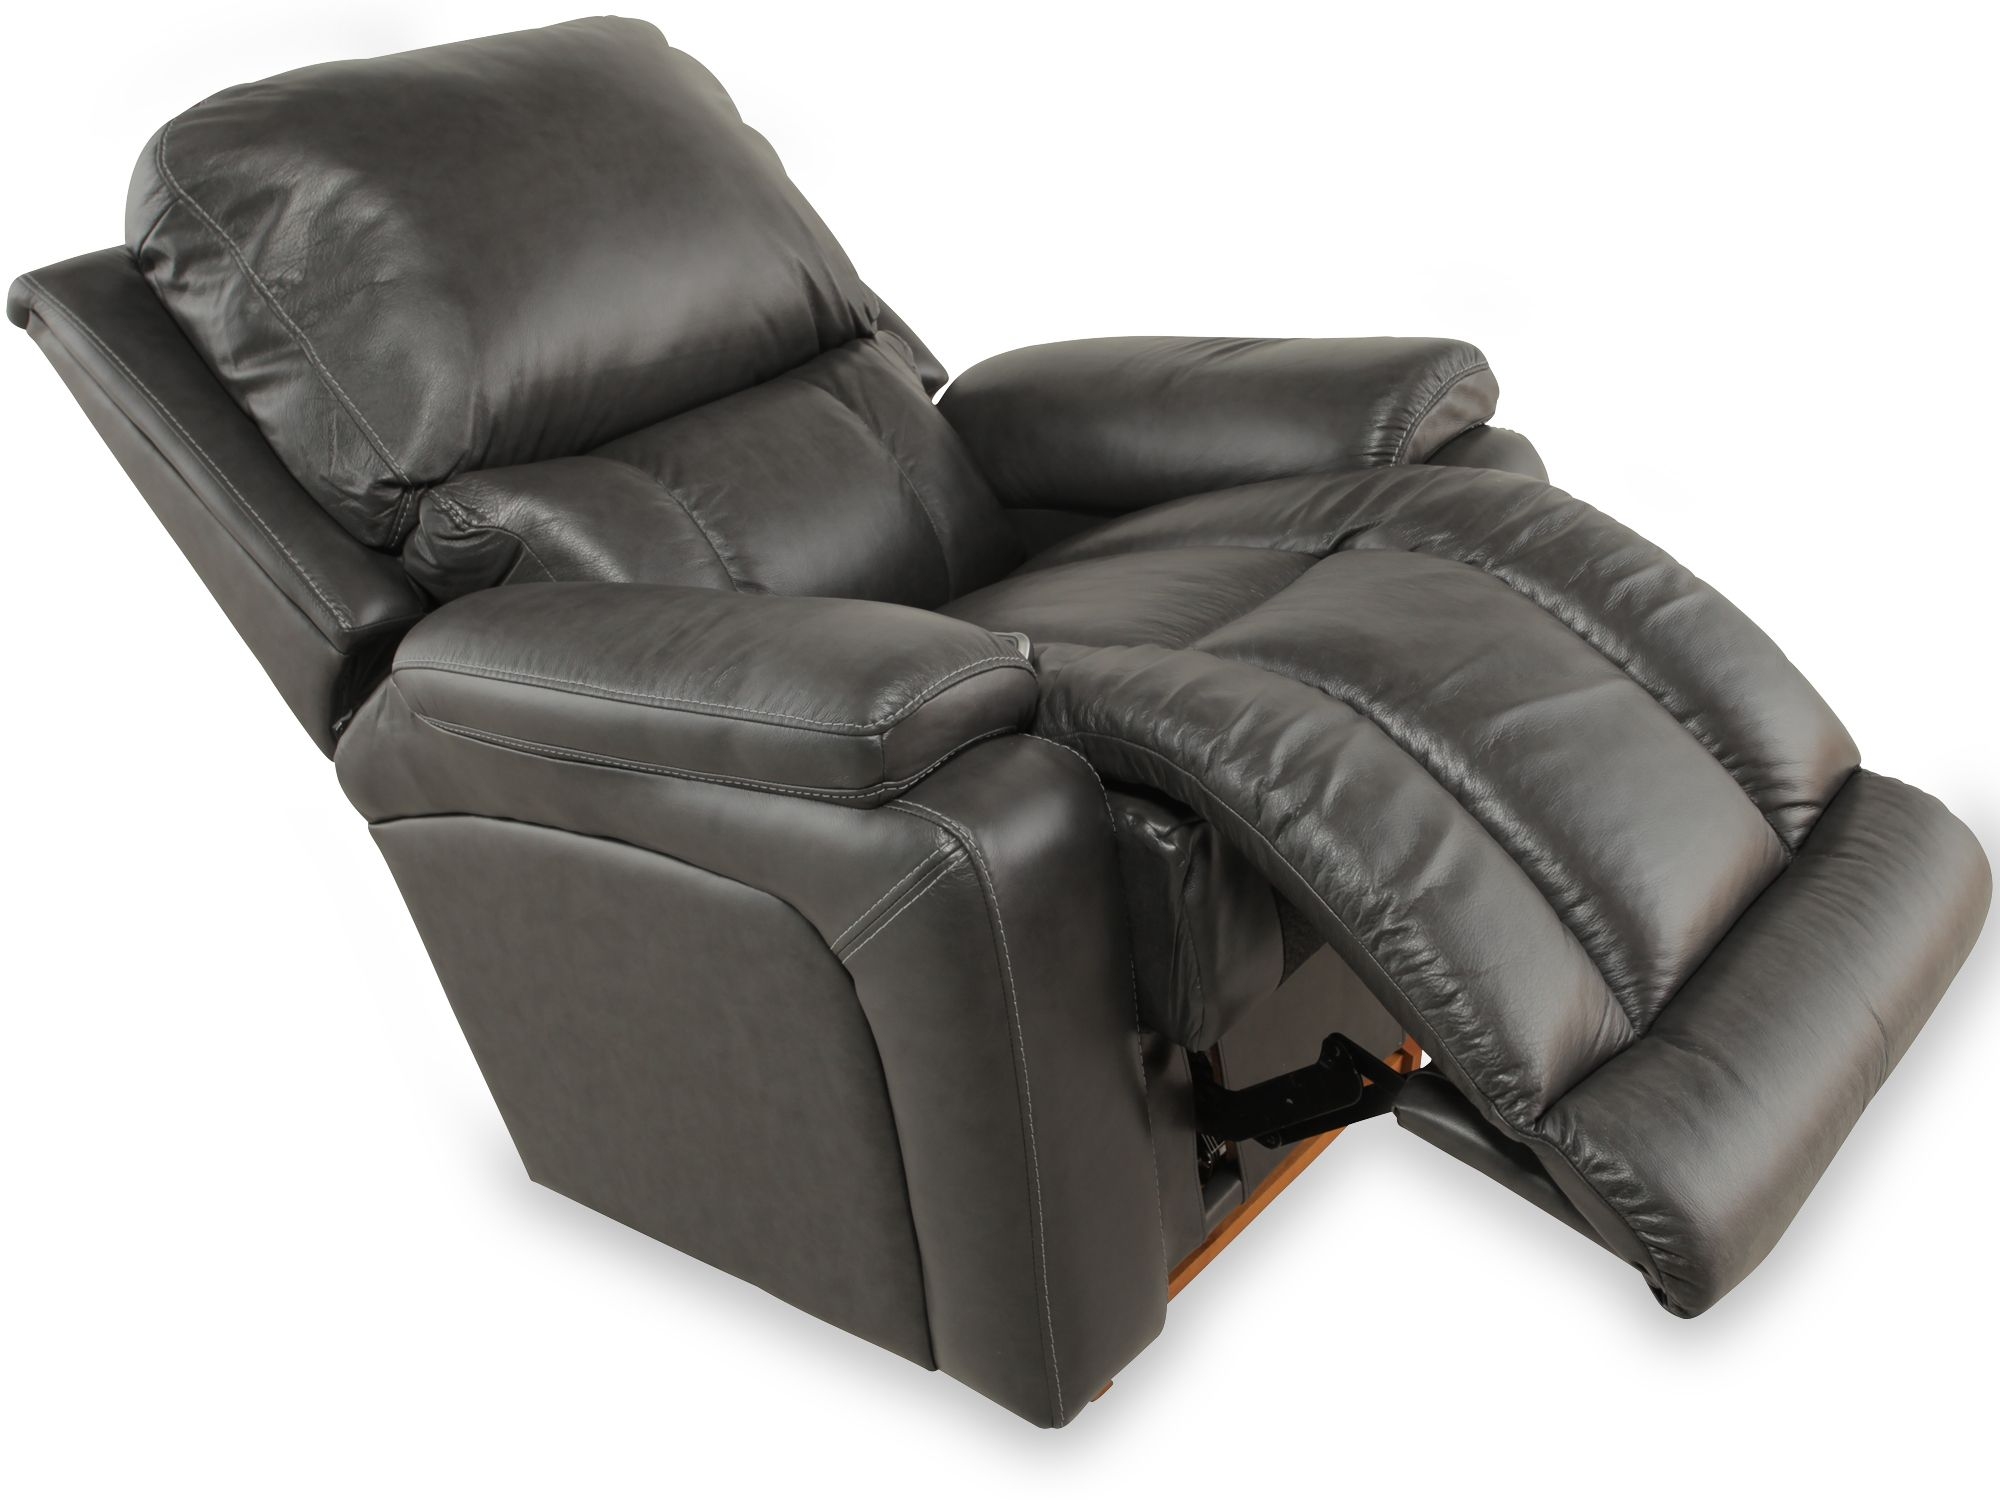 How To Do Lazy Boy Recliner Repairs Cuddly Home Advisors